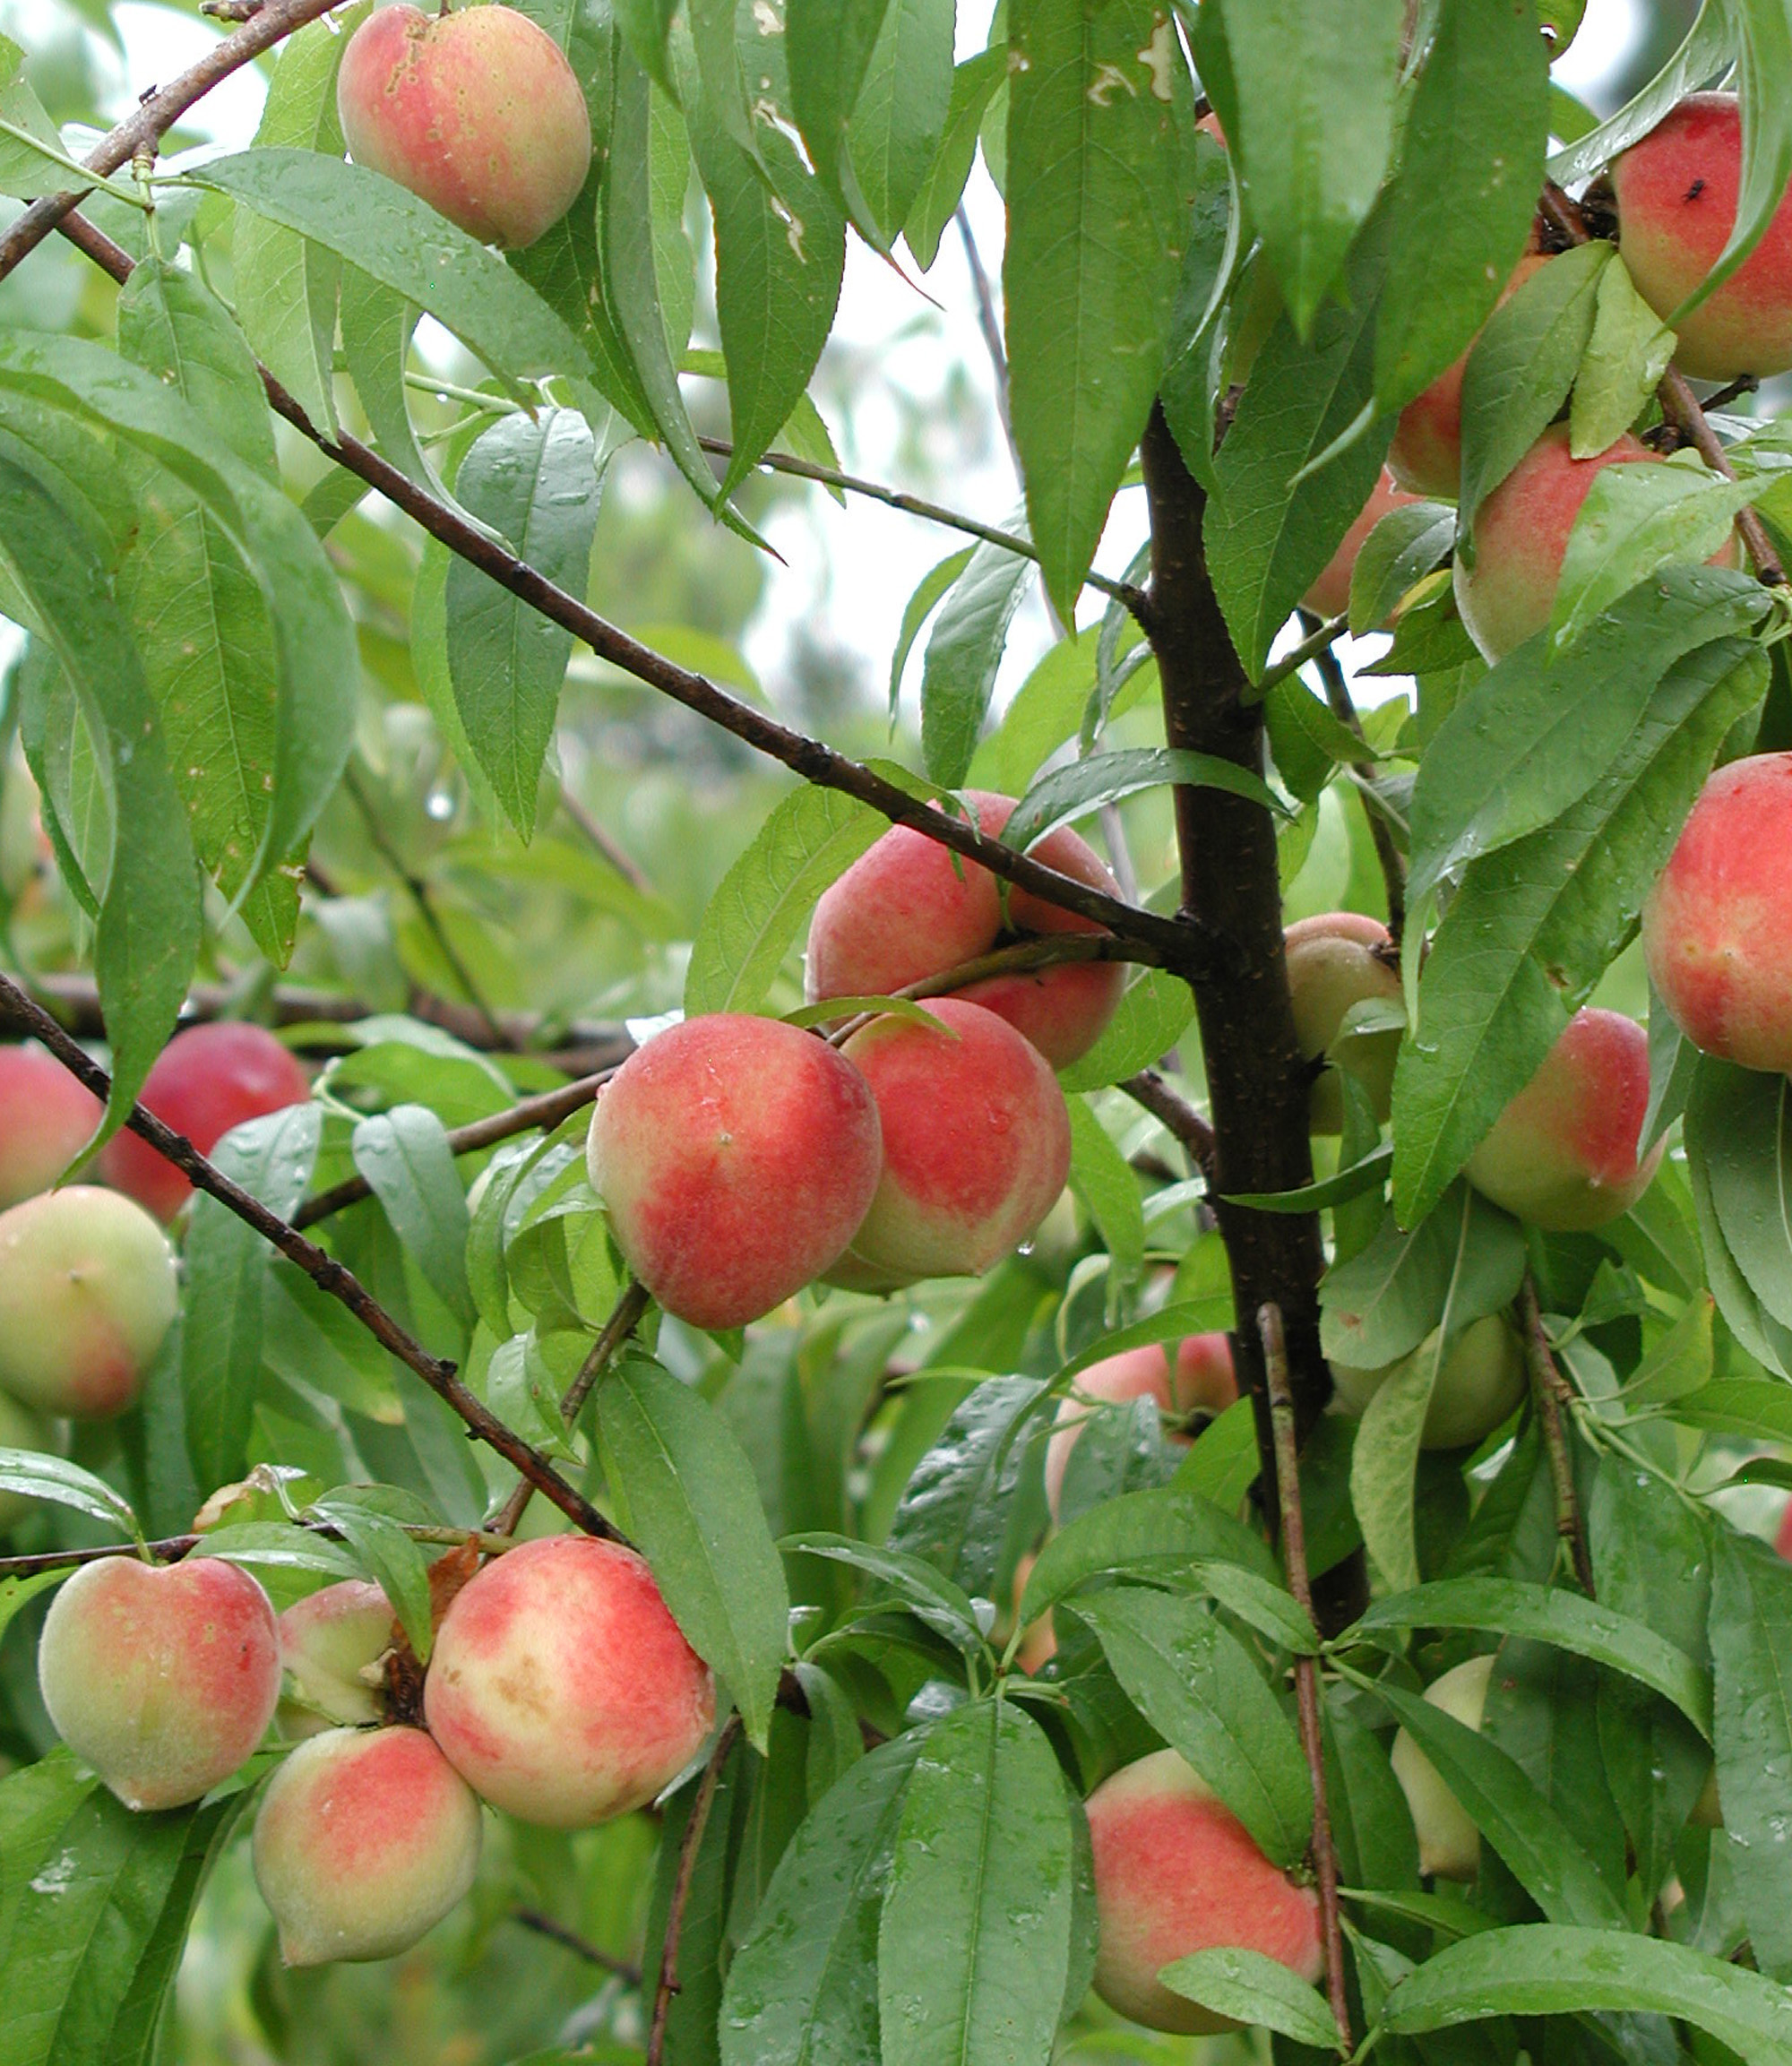 University of Georgia scientist Dario Chavez will soon plant about 800 peach trees to create a peach research orchard on a UGA Griffin campus farm.